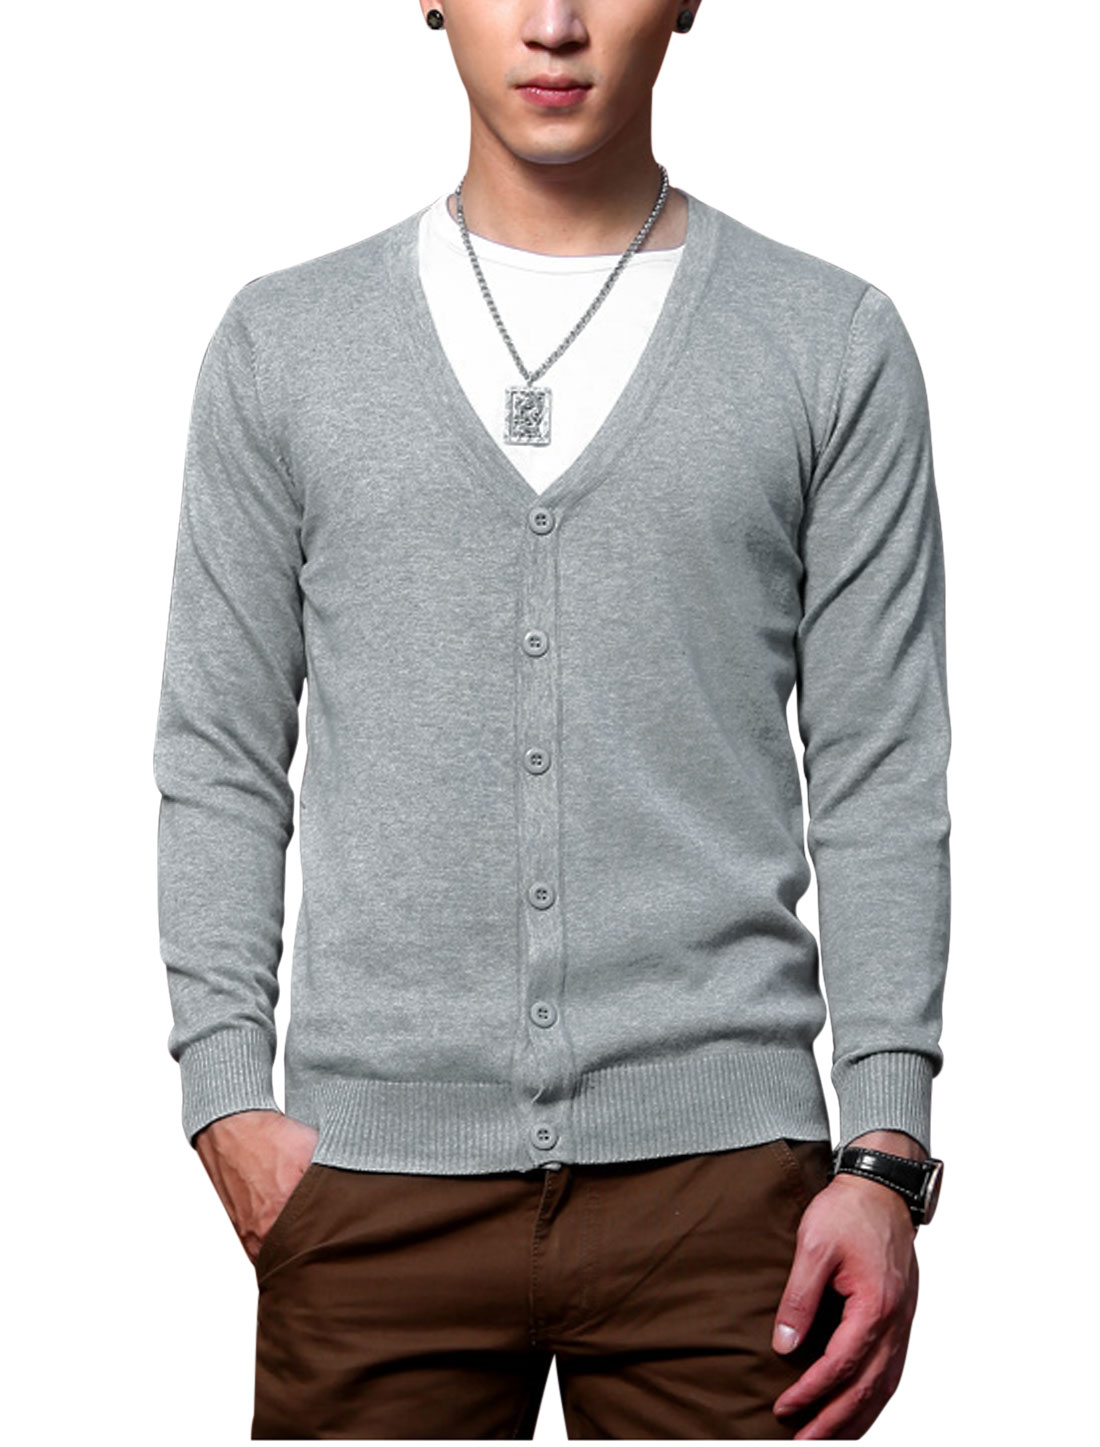 Button Closure V Neckline Stylish Light Gray Knit Cardigan for Man S